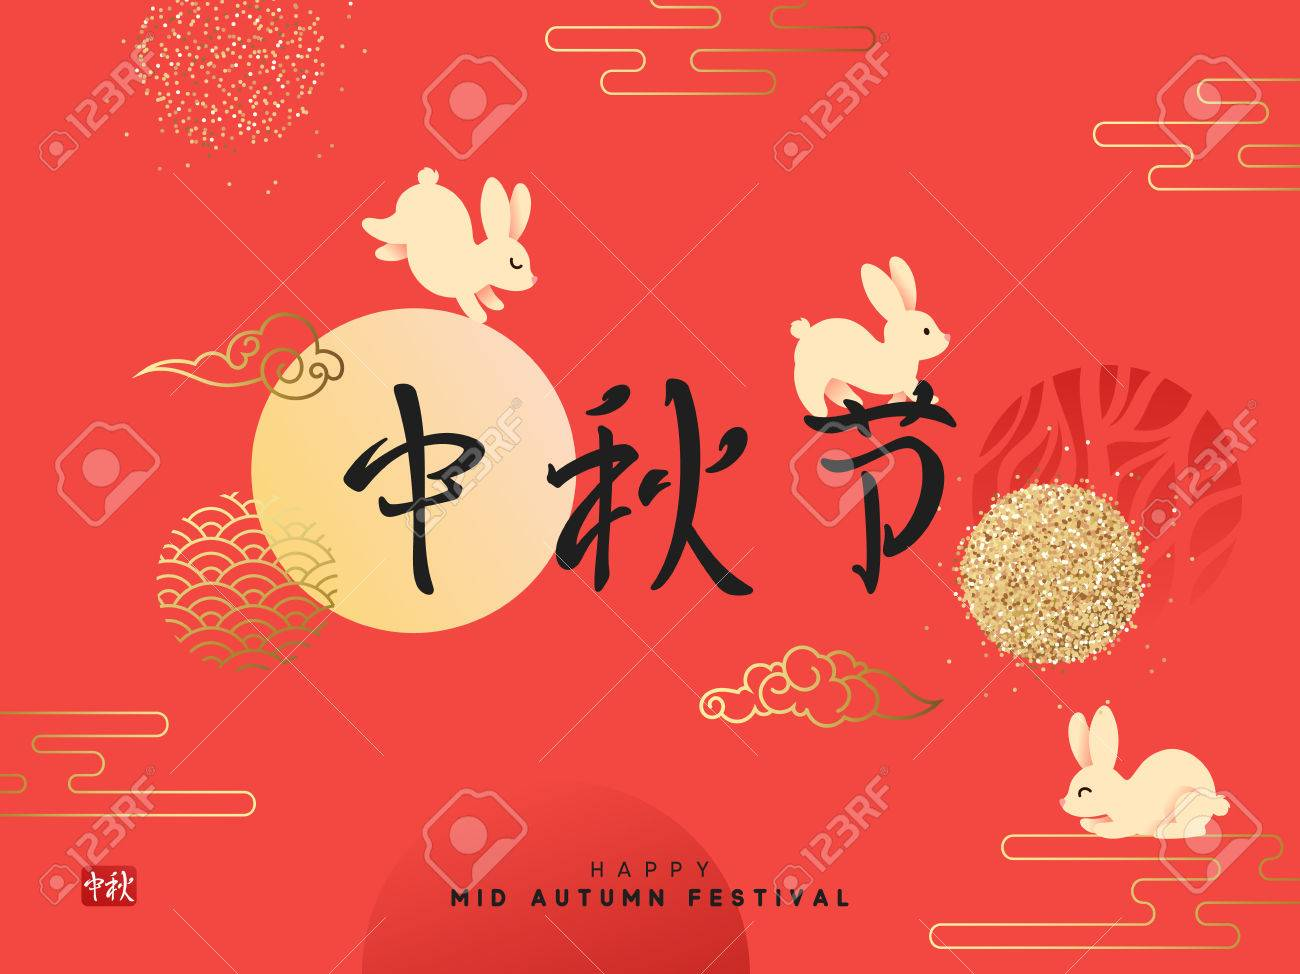 Greeting card happy rabbit with moon chinese festival mid autumn greeting card happy rabbit with moon chinese festival mid autumn hieroglyph calligraphic handmade lettering text kristyandbryce Choice Image